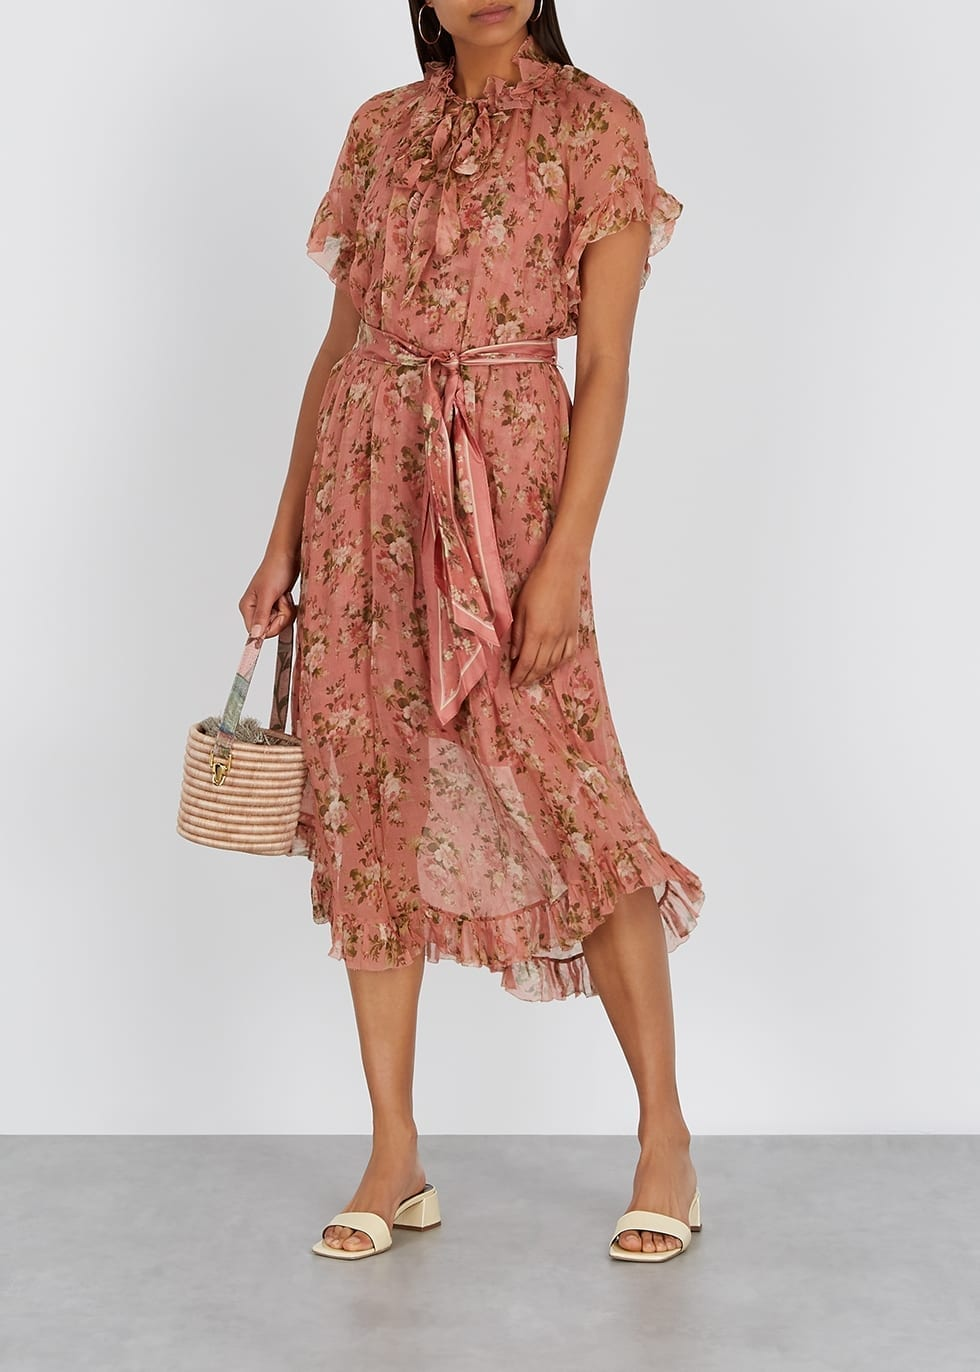 ZIMMERMANN Espionage Floral-print Georgette Midi Dress